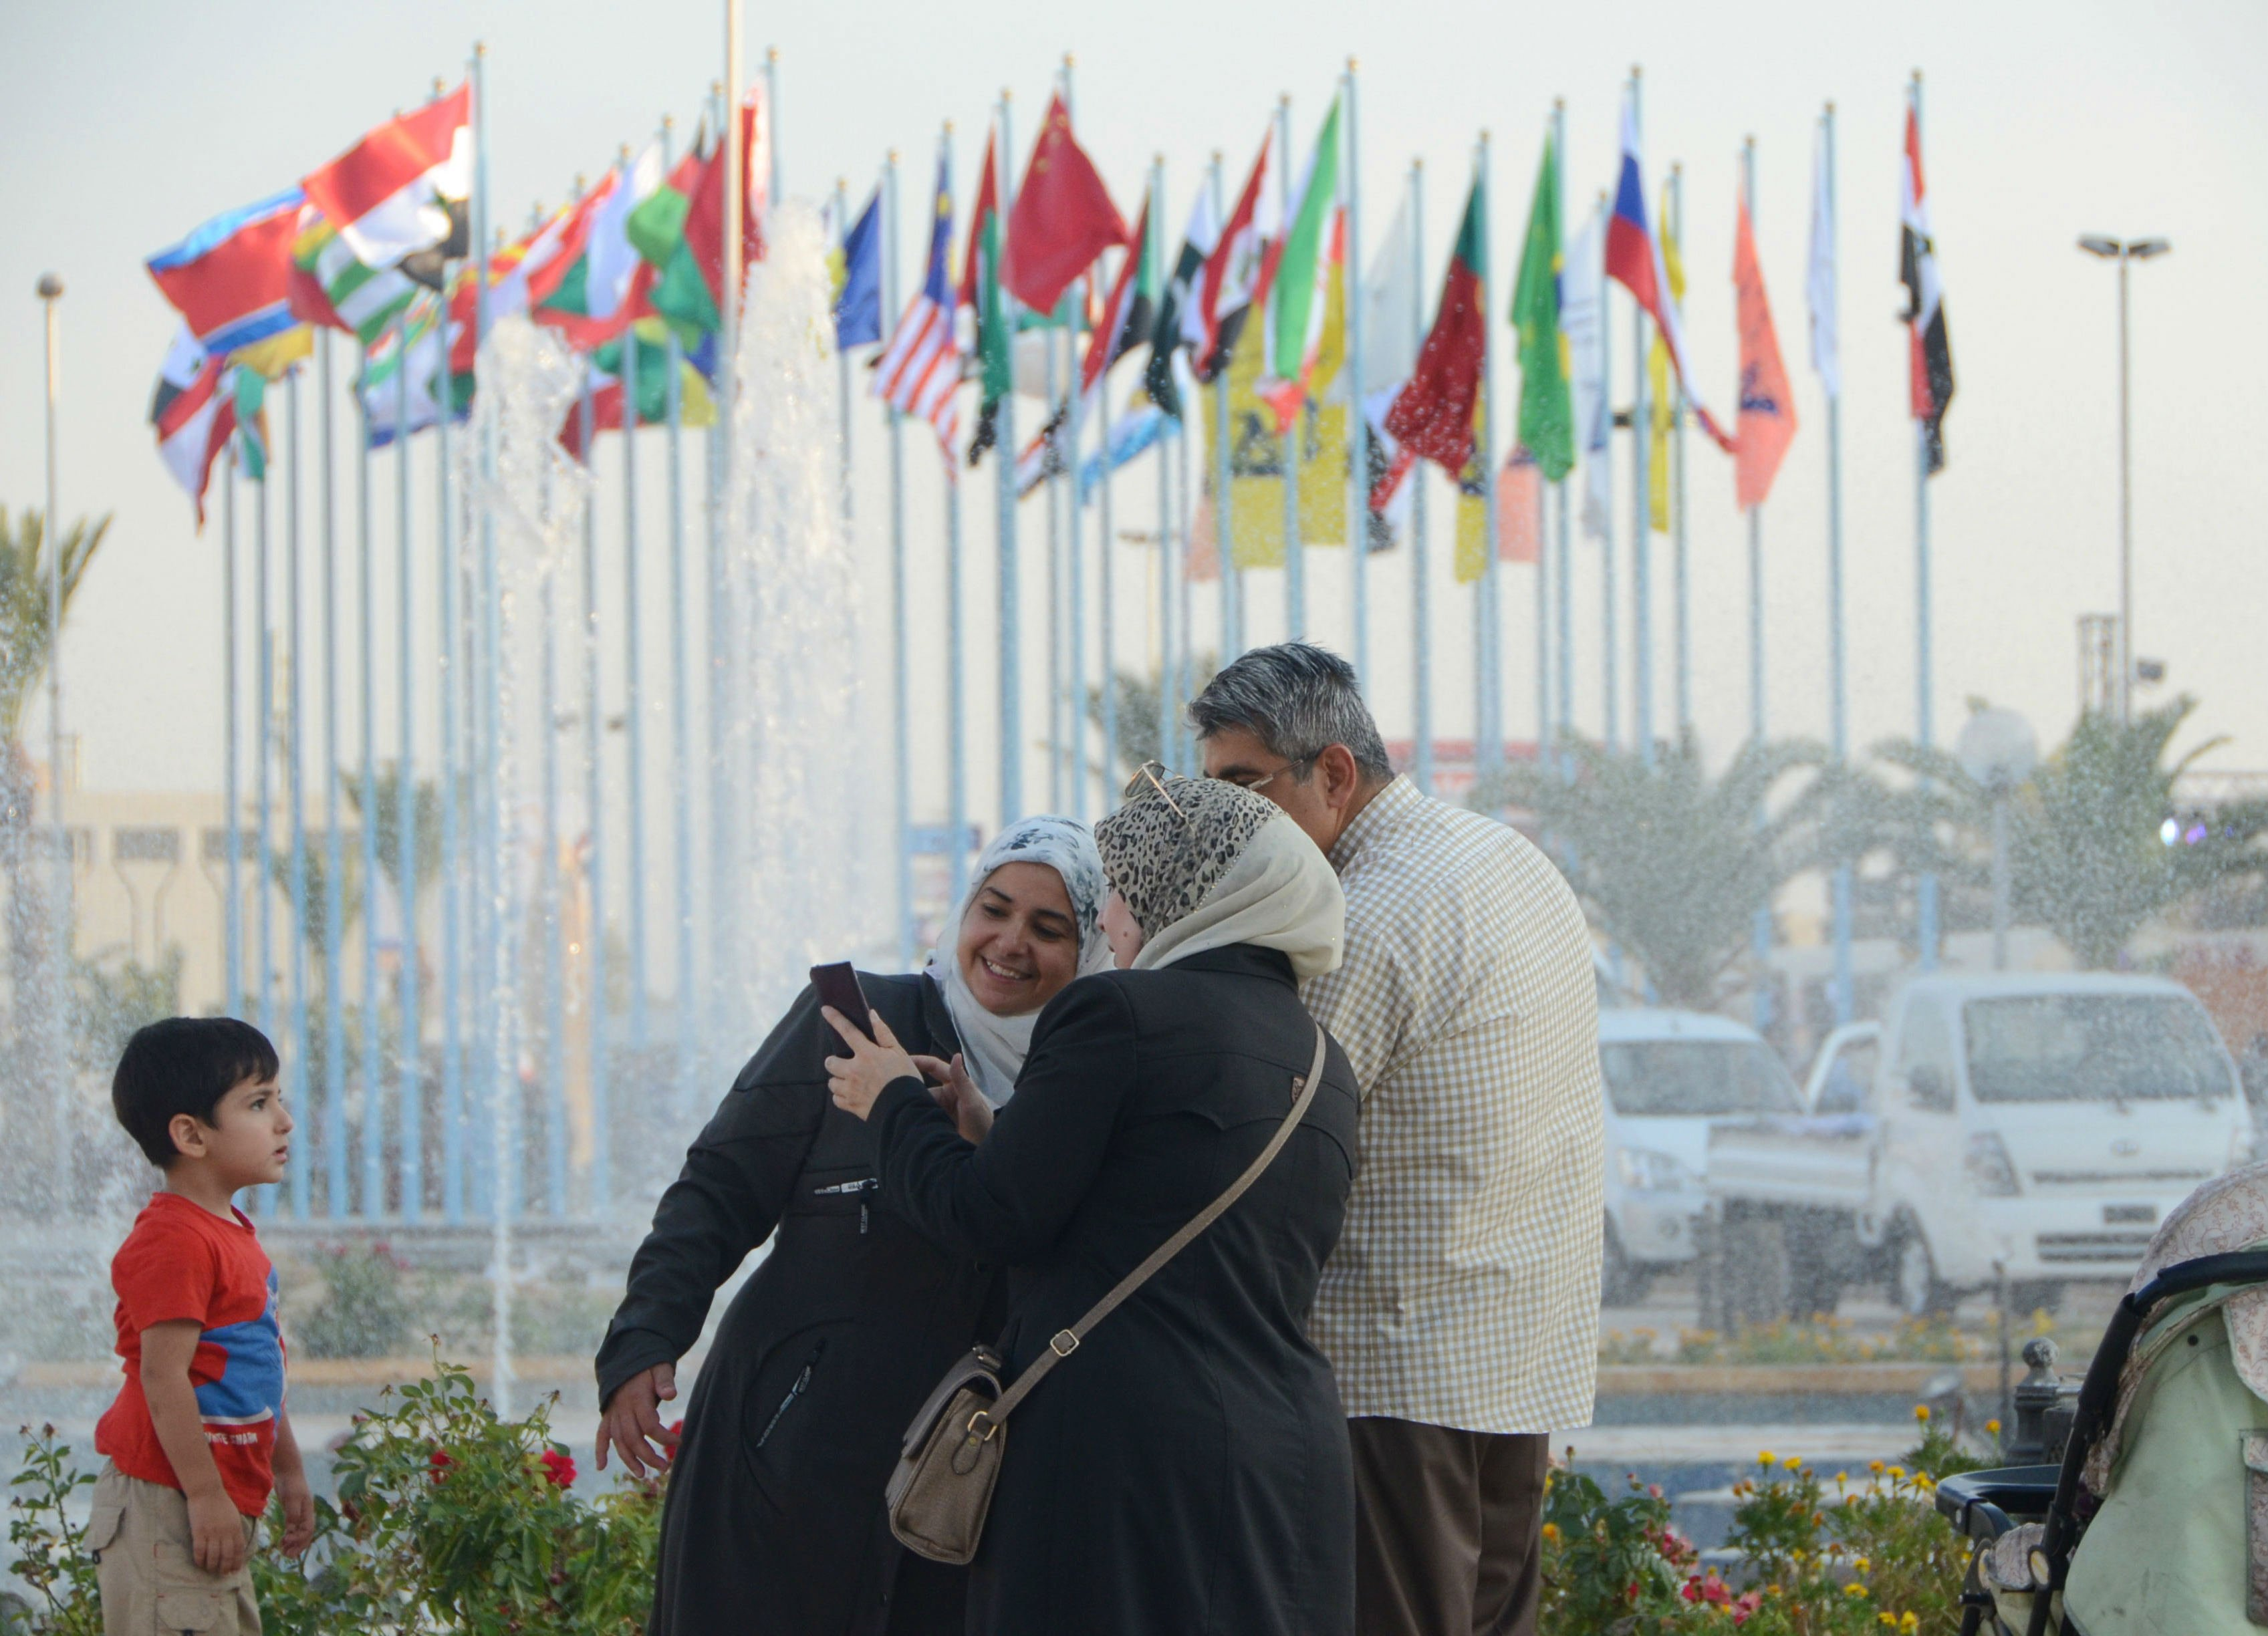 People arrive to attend the Damascus International Fair in the Syrian capital (AFP)